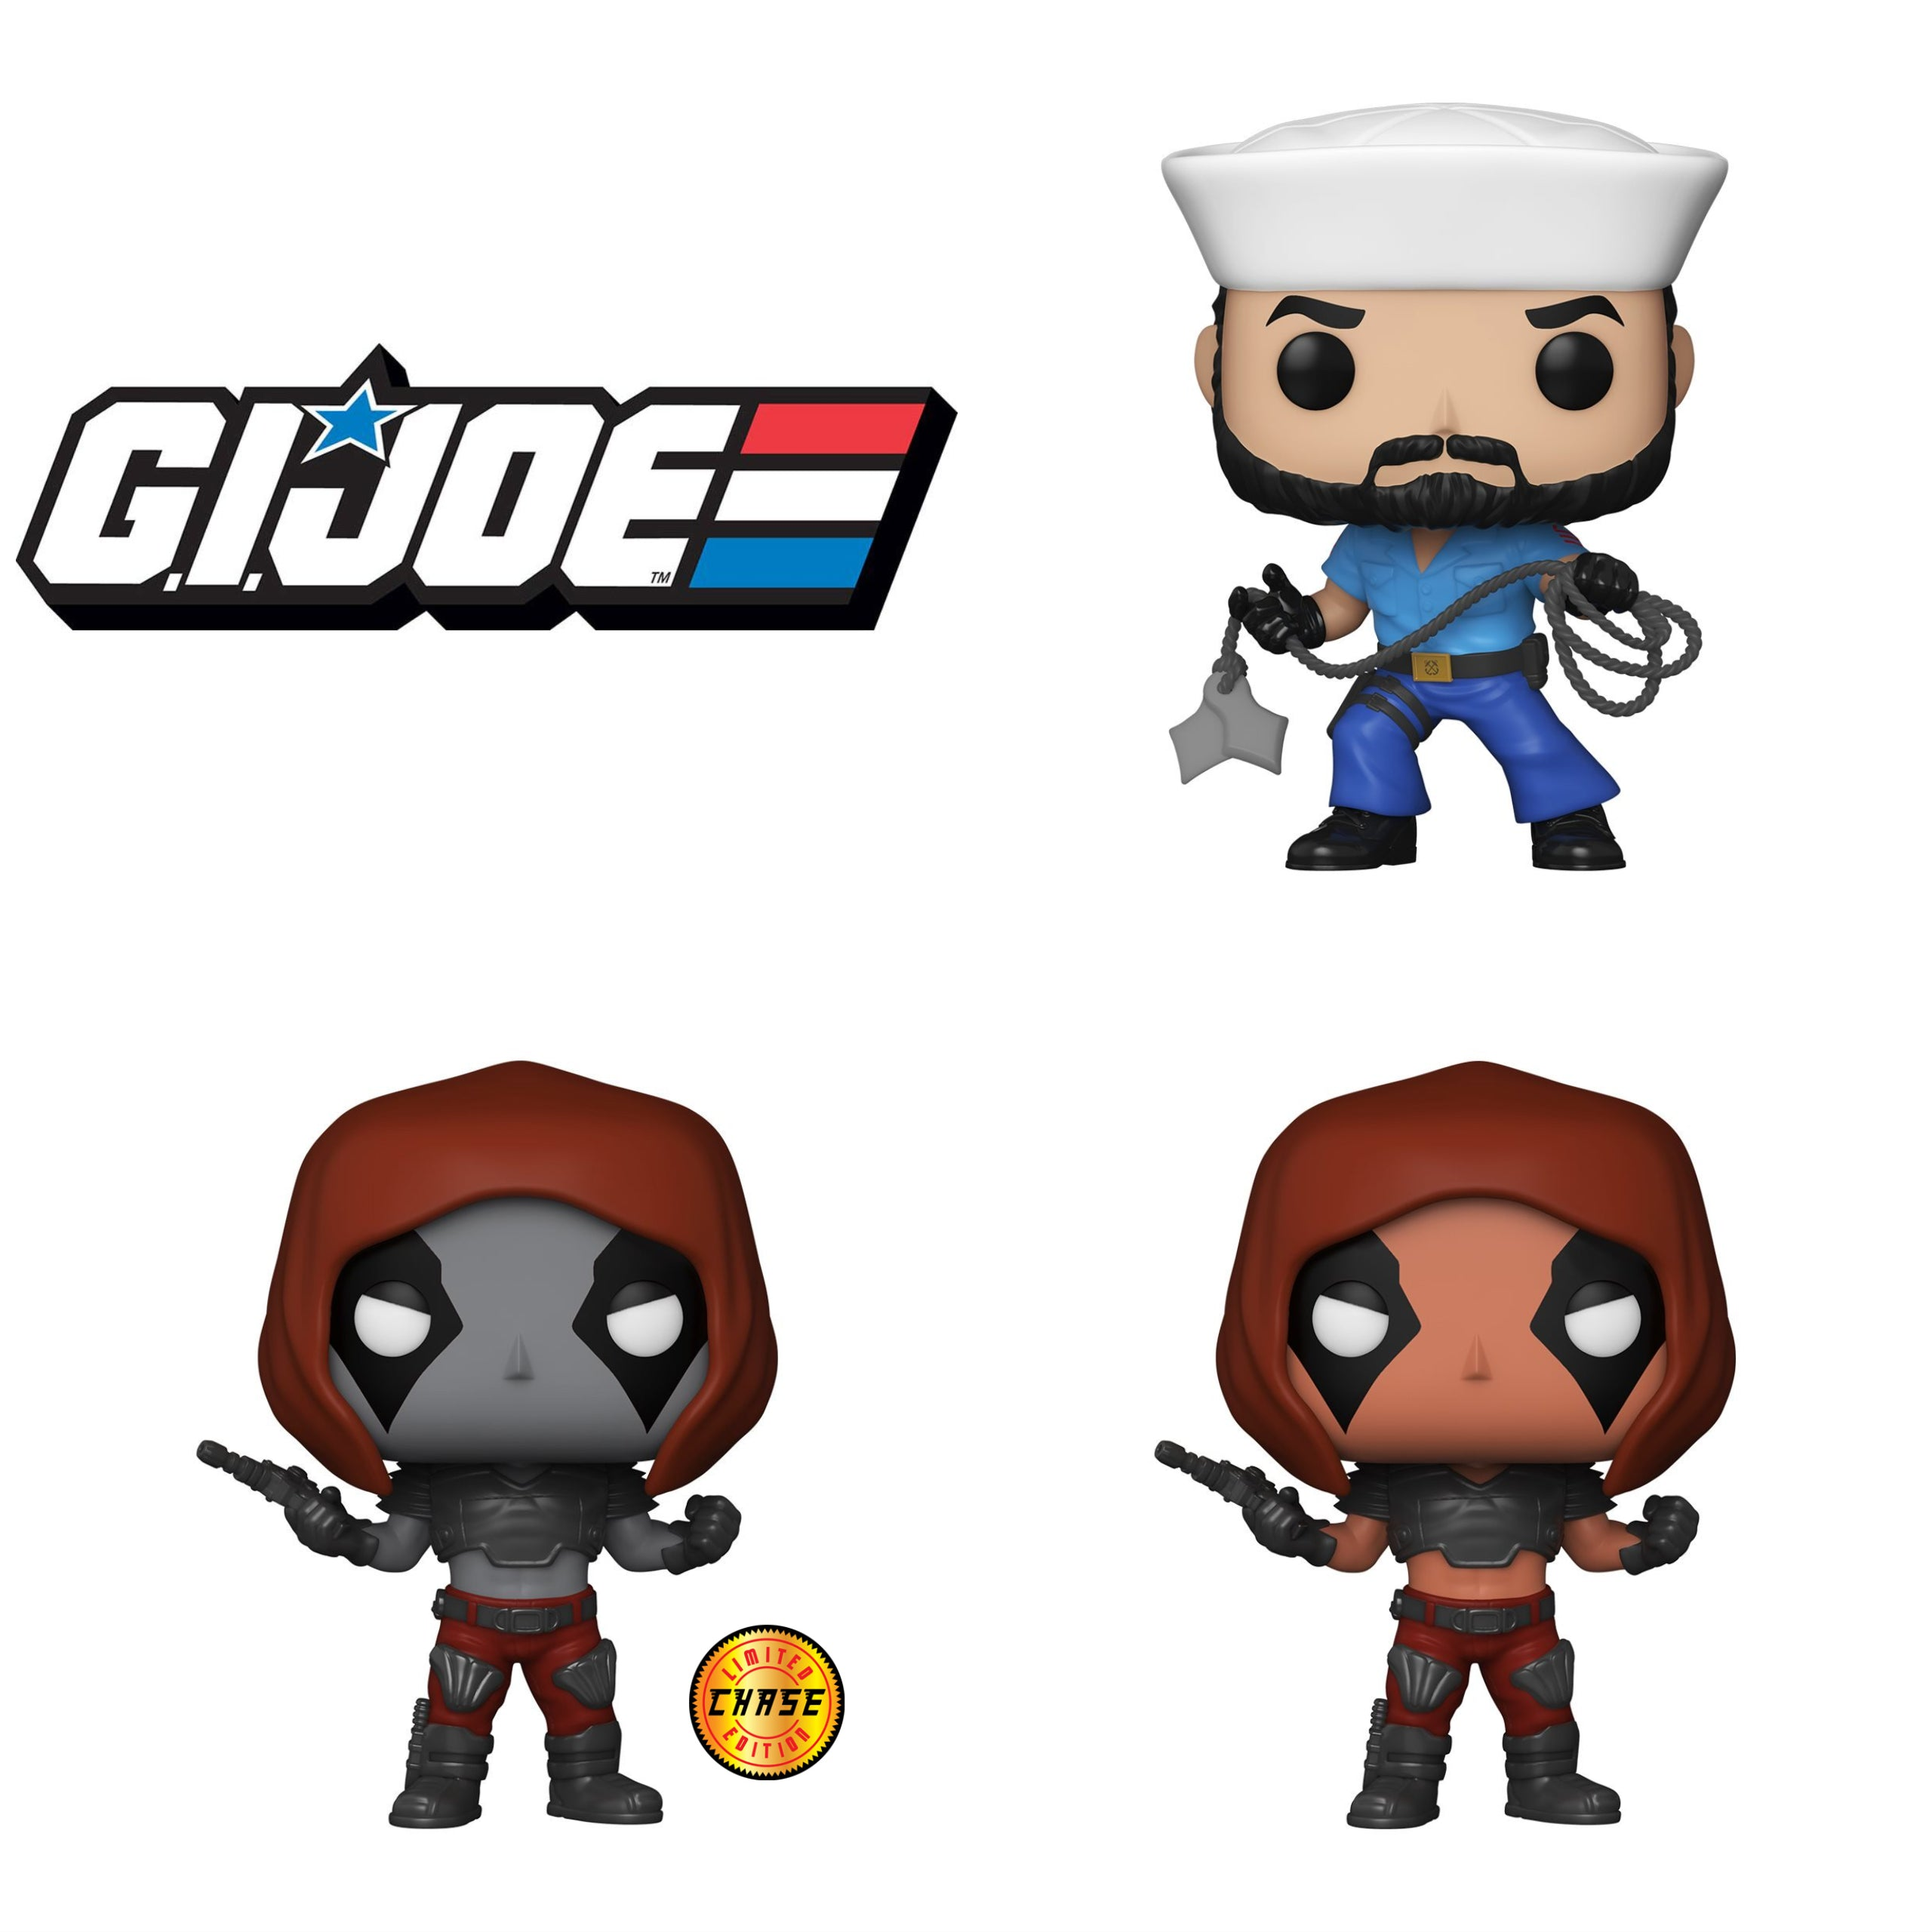 GI Joe Chase Bundle [3 Figures]